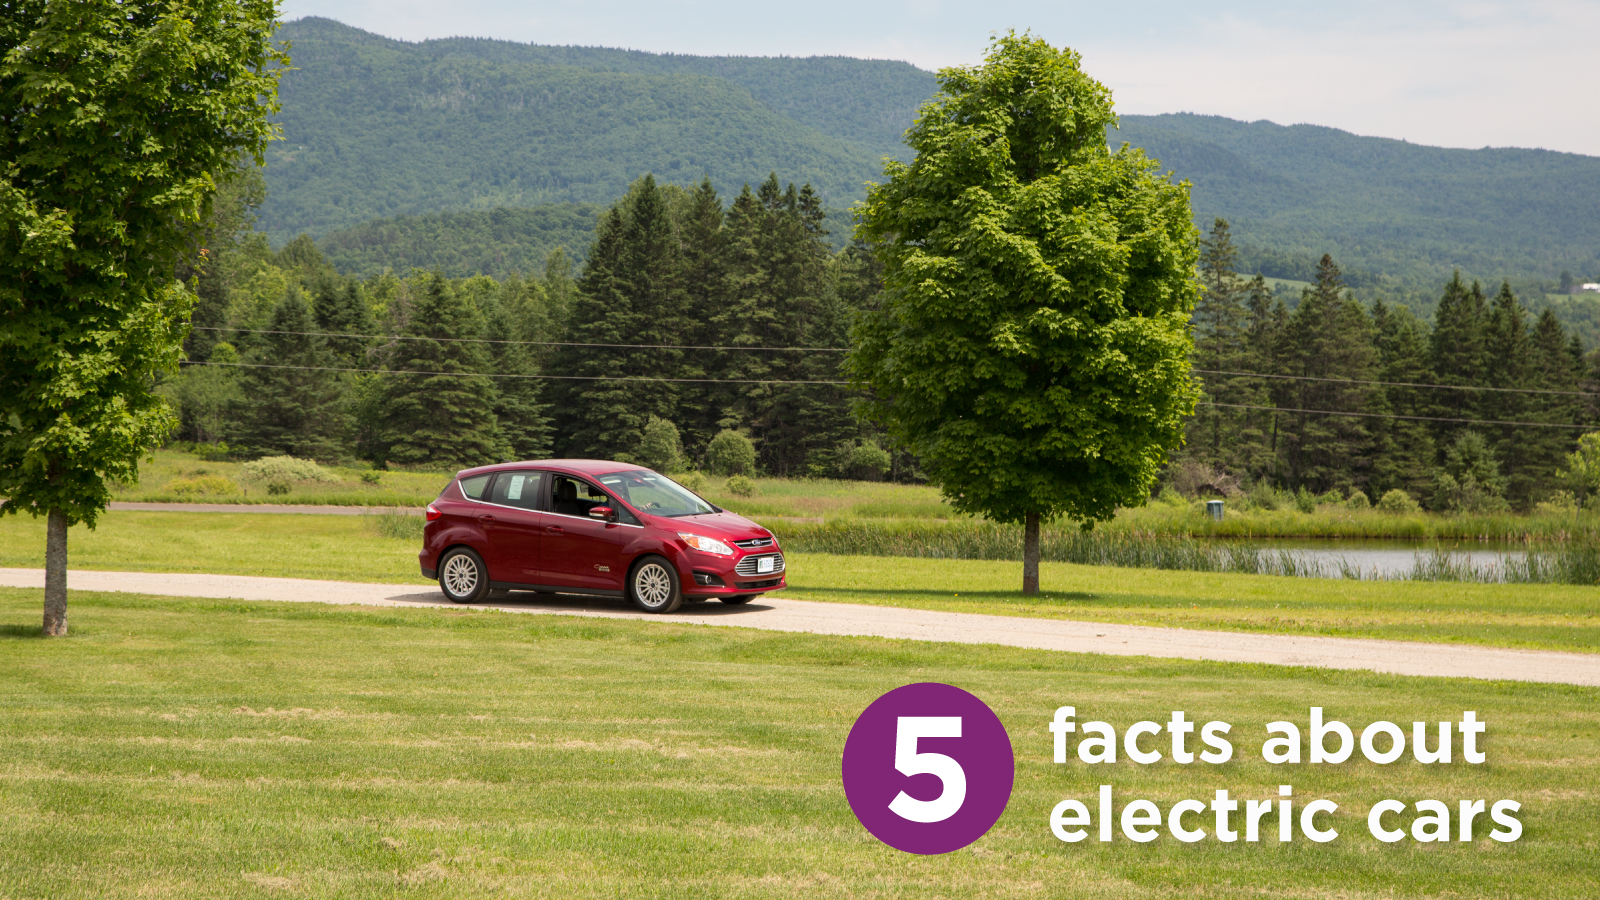 Vermont 5 car facts